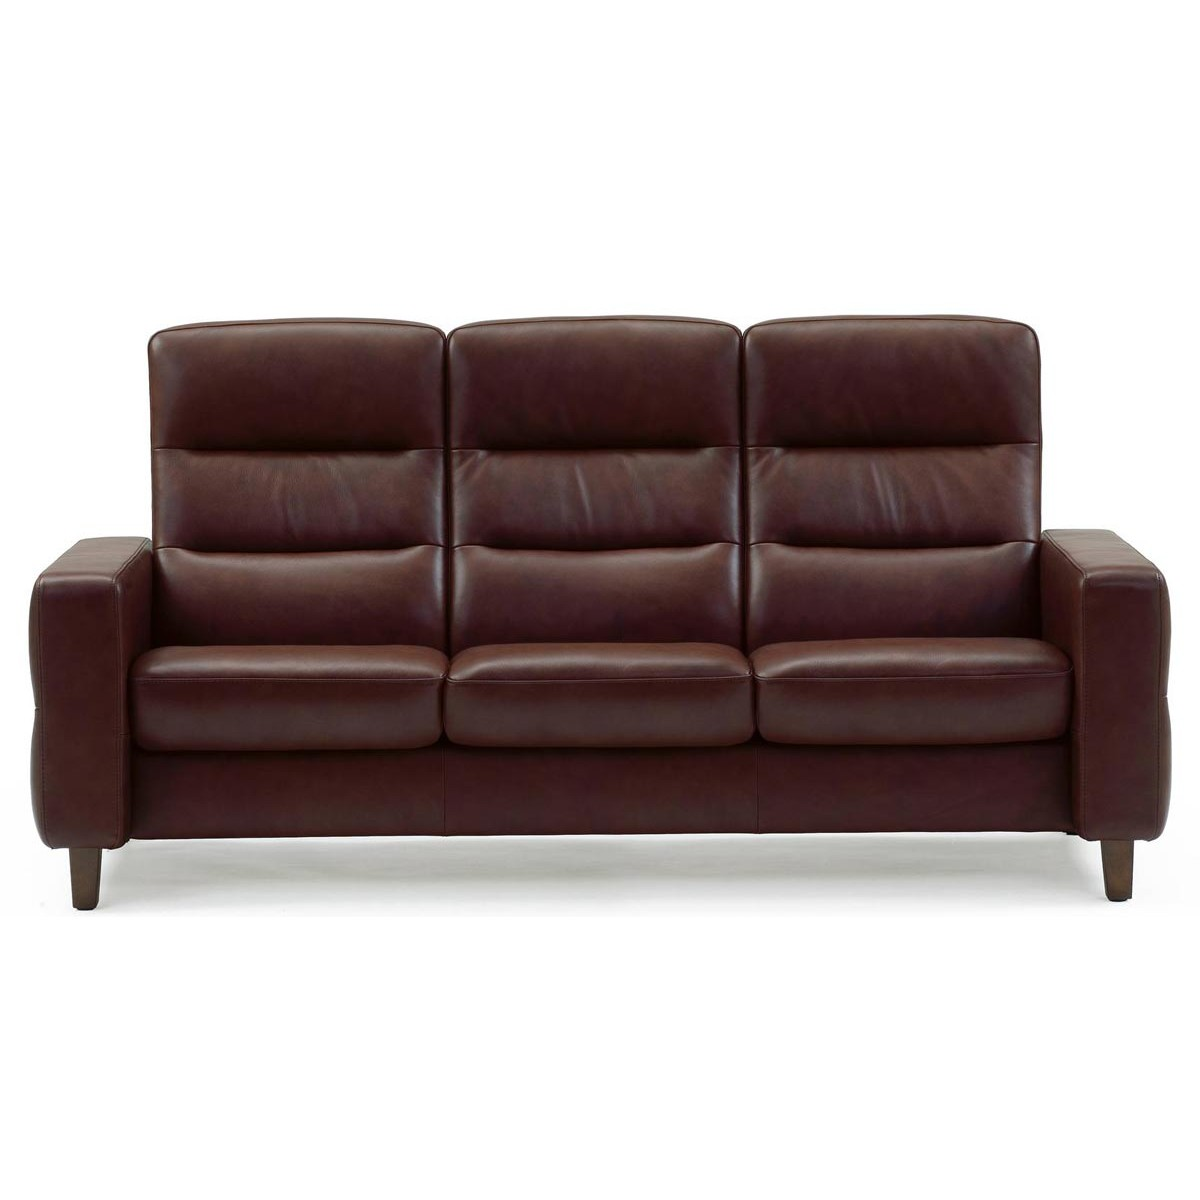 Stressless Wave High-Back Sofa from $3,995.00 by Stressless | Danco ...